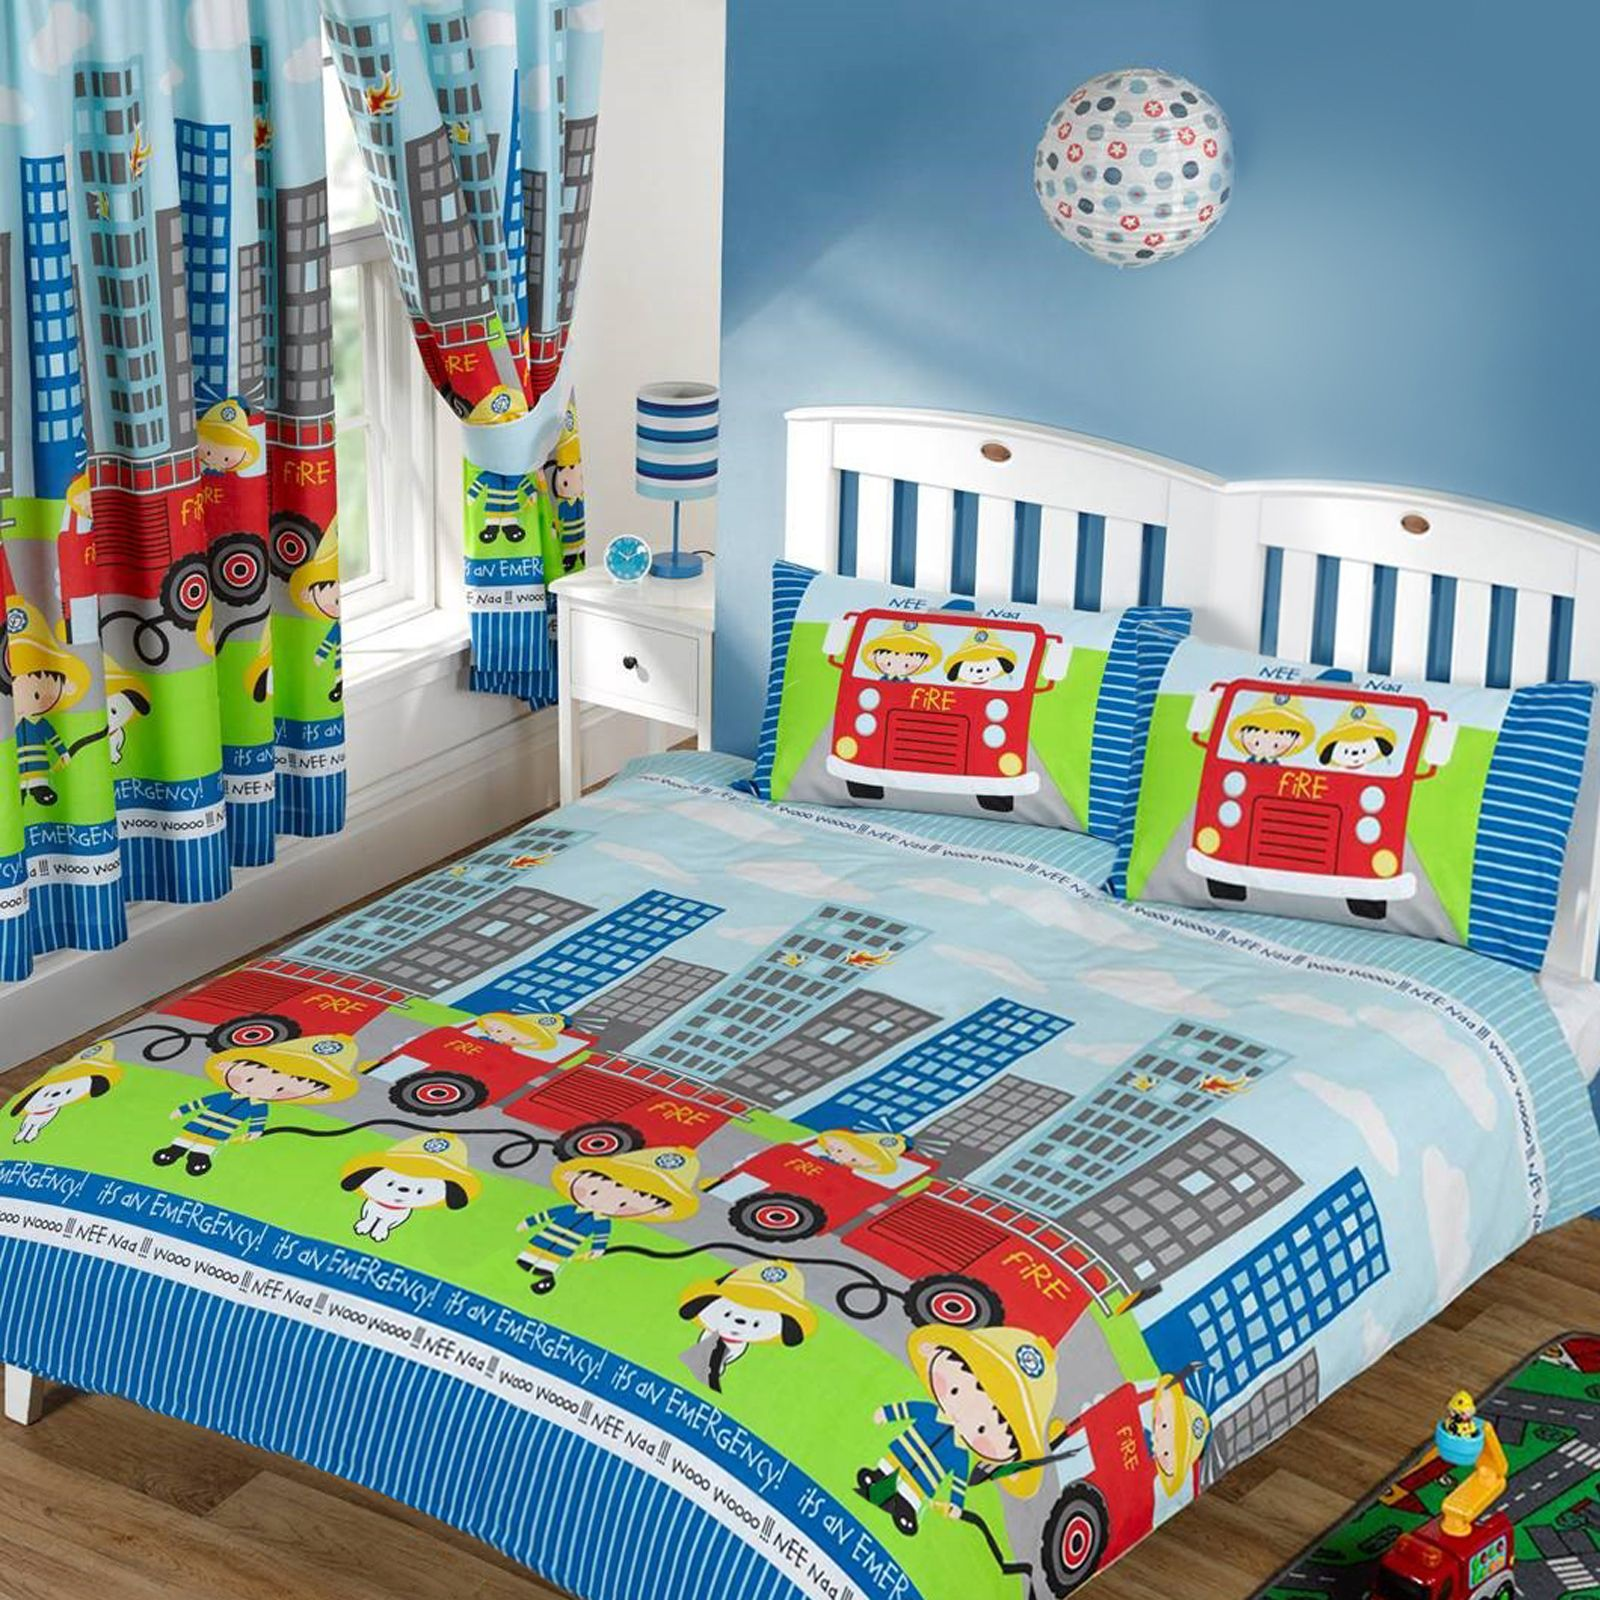 Bed cover in bedding ebay - Exclusive Double Duvet Cover Sets Kids Designs Bedding